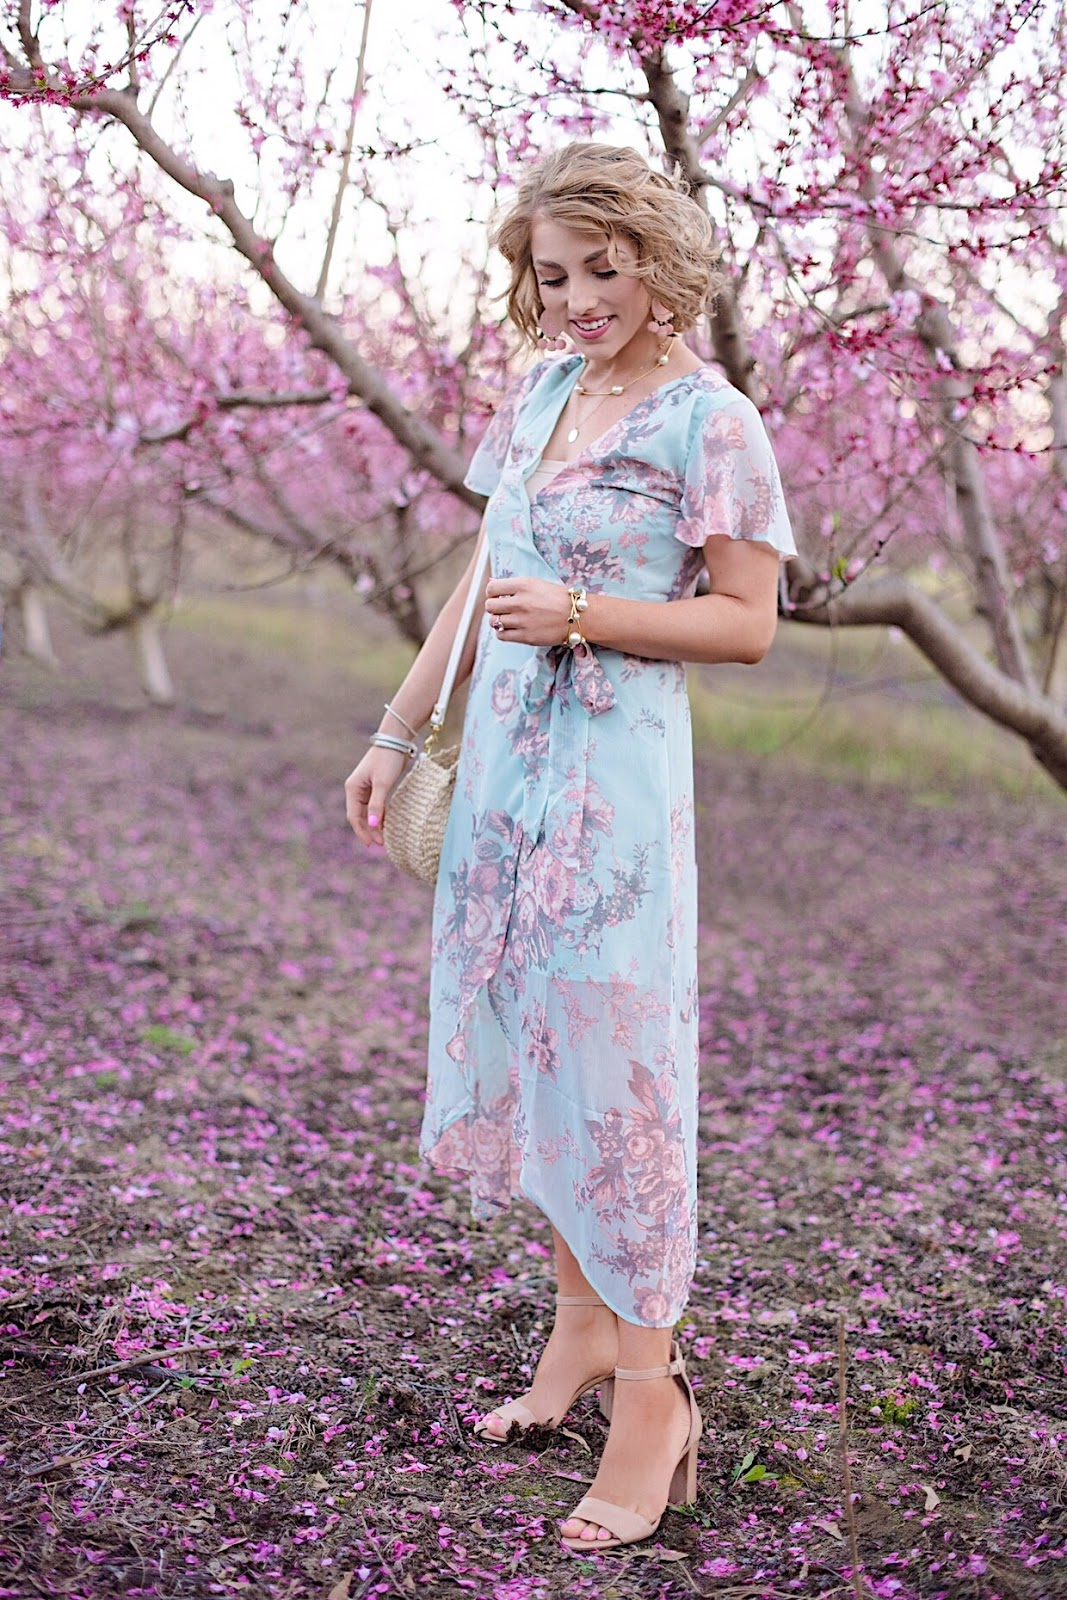 Spring Style: Floral Wrap Dress & Peach Blossoms - Something Delightful Blog